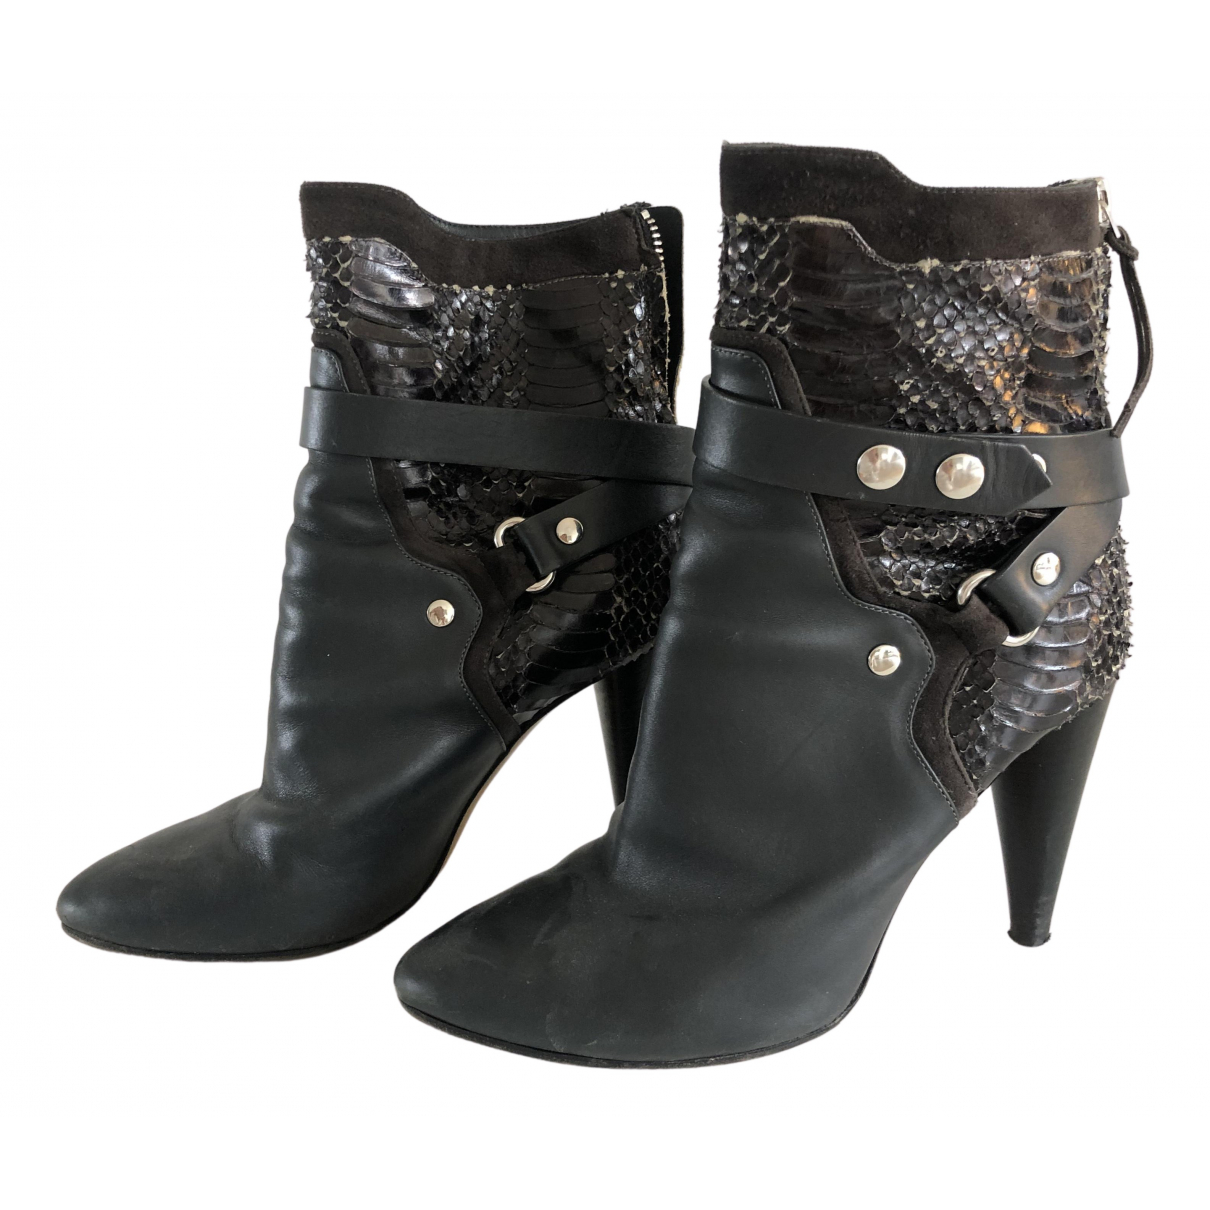 Isabel Marant N Grey Leather Ankle boots for Women 39 EU